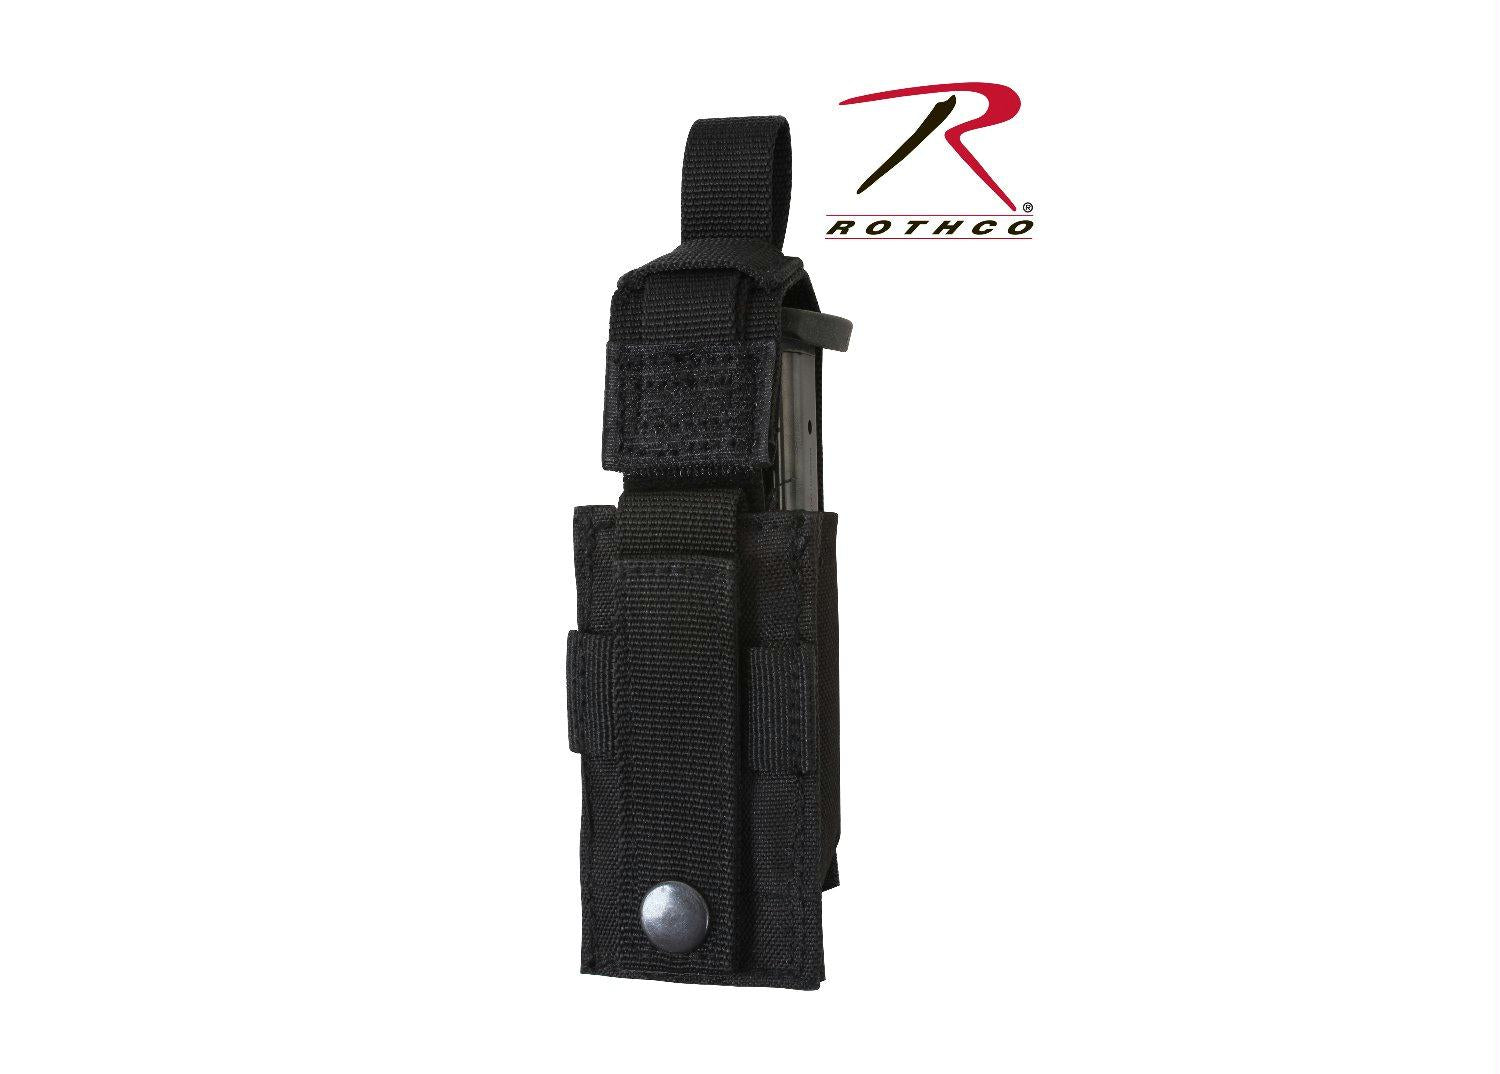 Rothco MOLLE Single Pistol Mag Pouch - Black